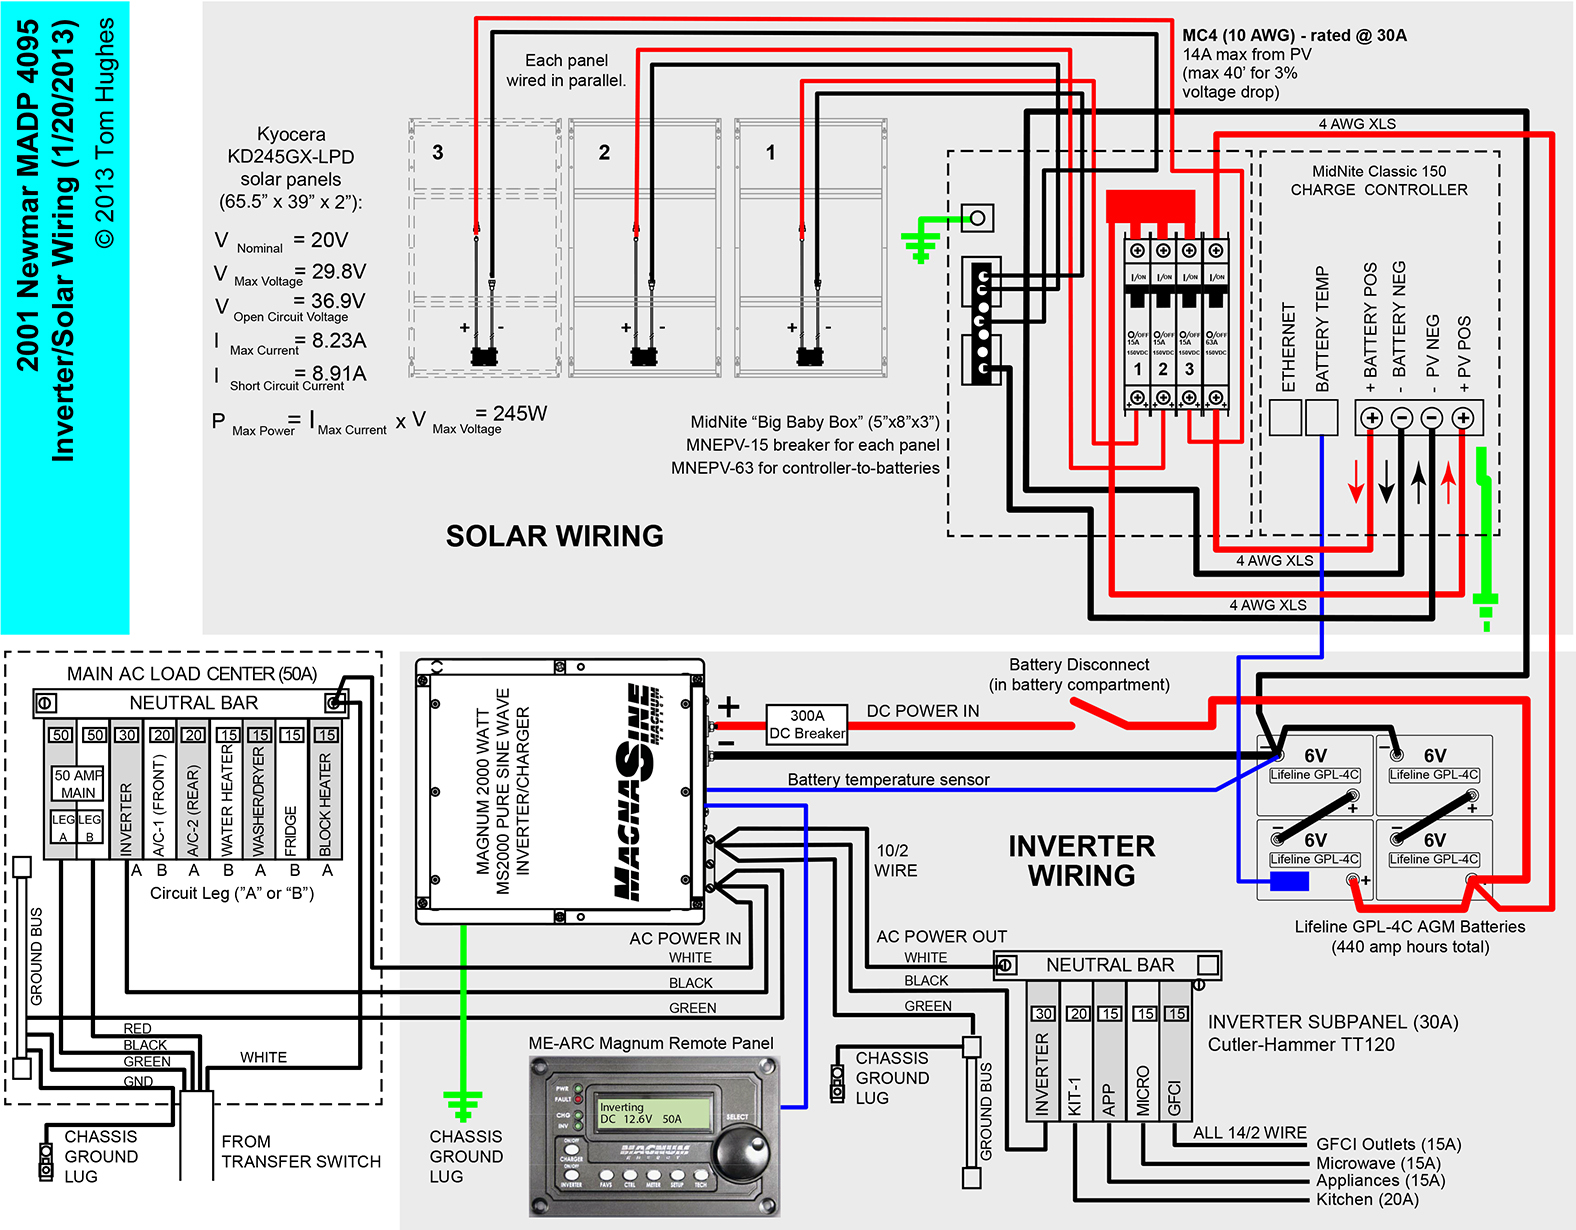 Simple Rv Dc Volt Circuit Breaker Wiring Diagram   Power System On An RV